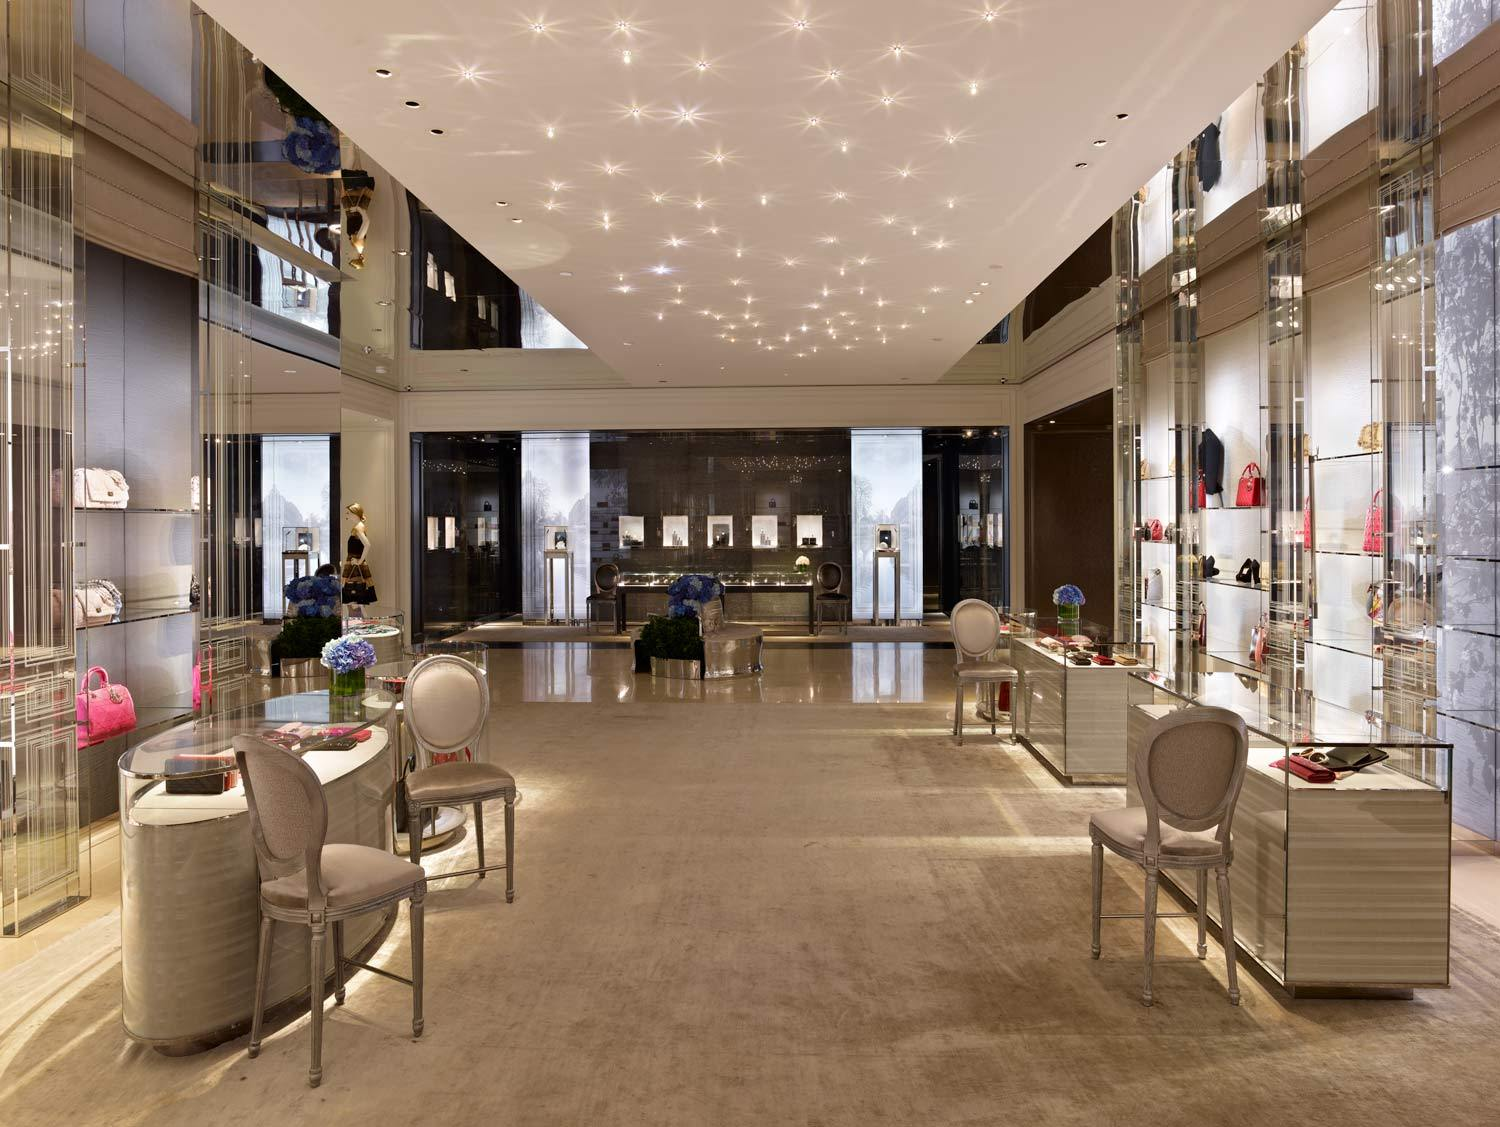 Christian dior boutique beverly hills stellar interior for Interiors by design